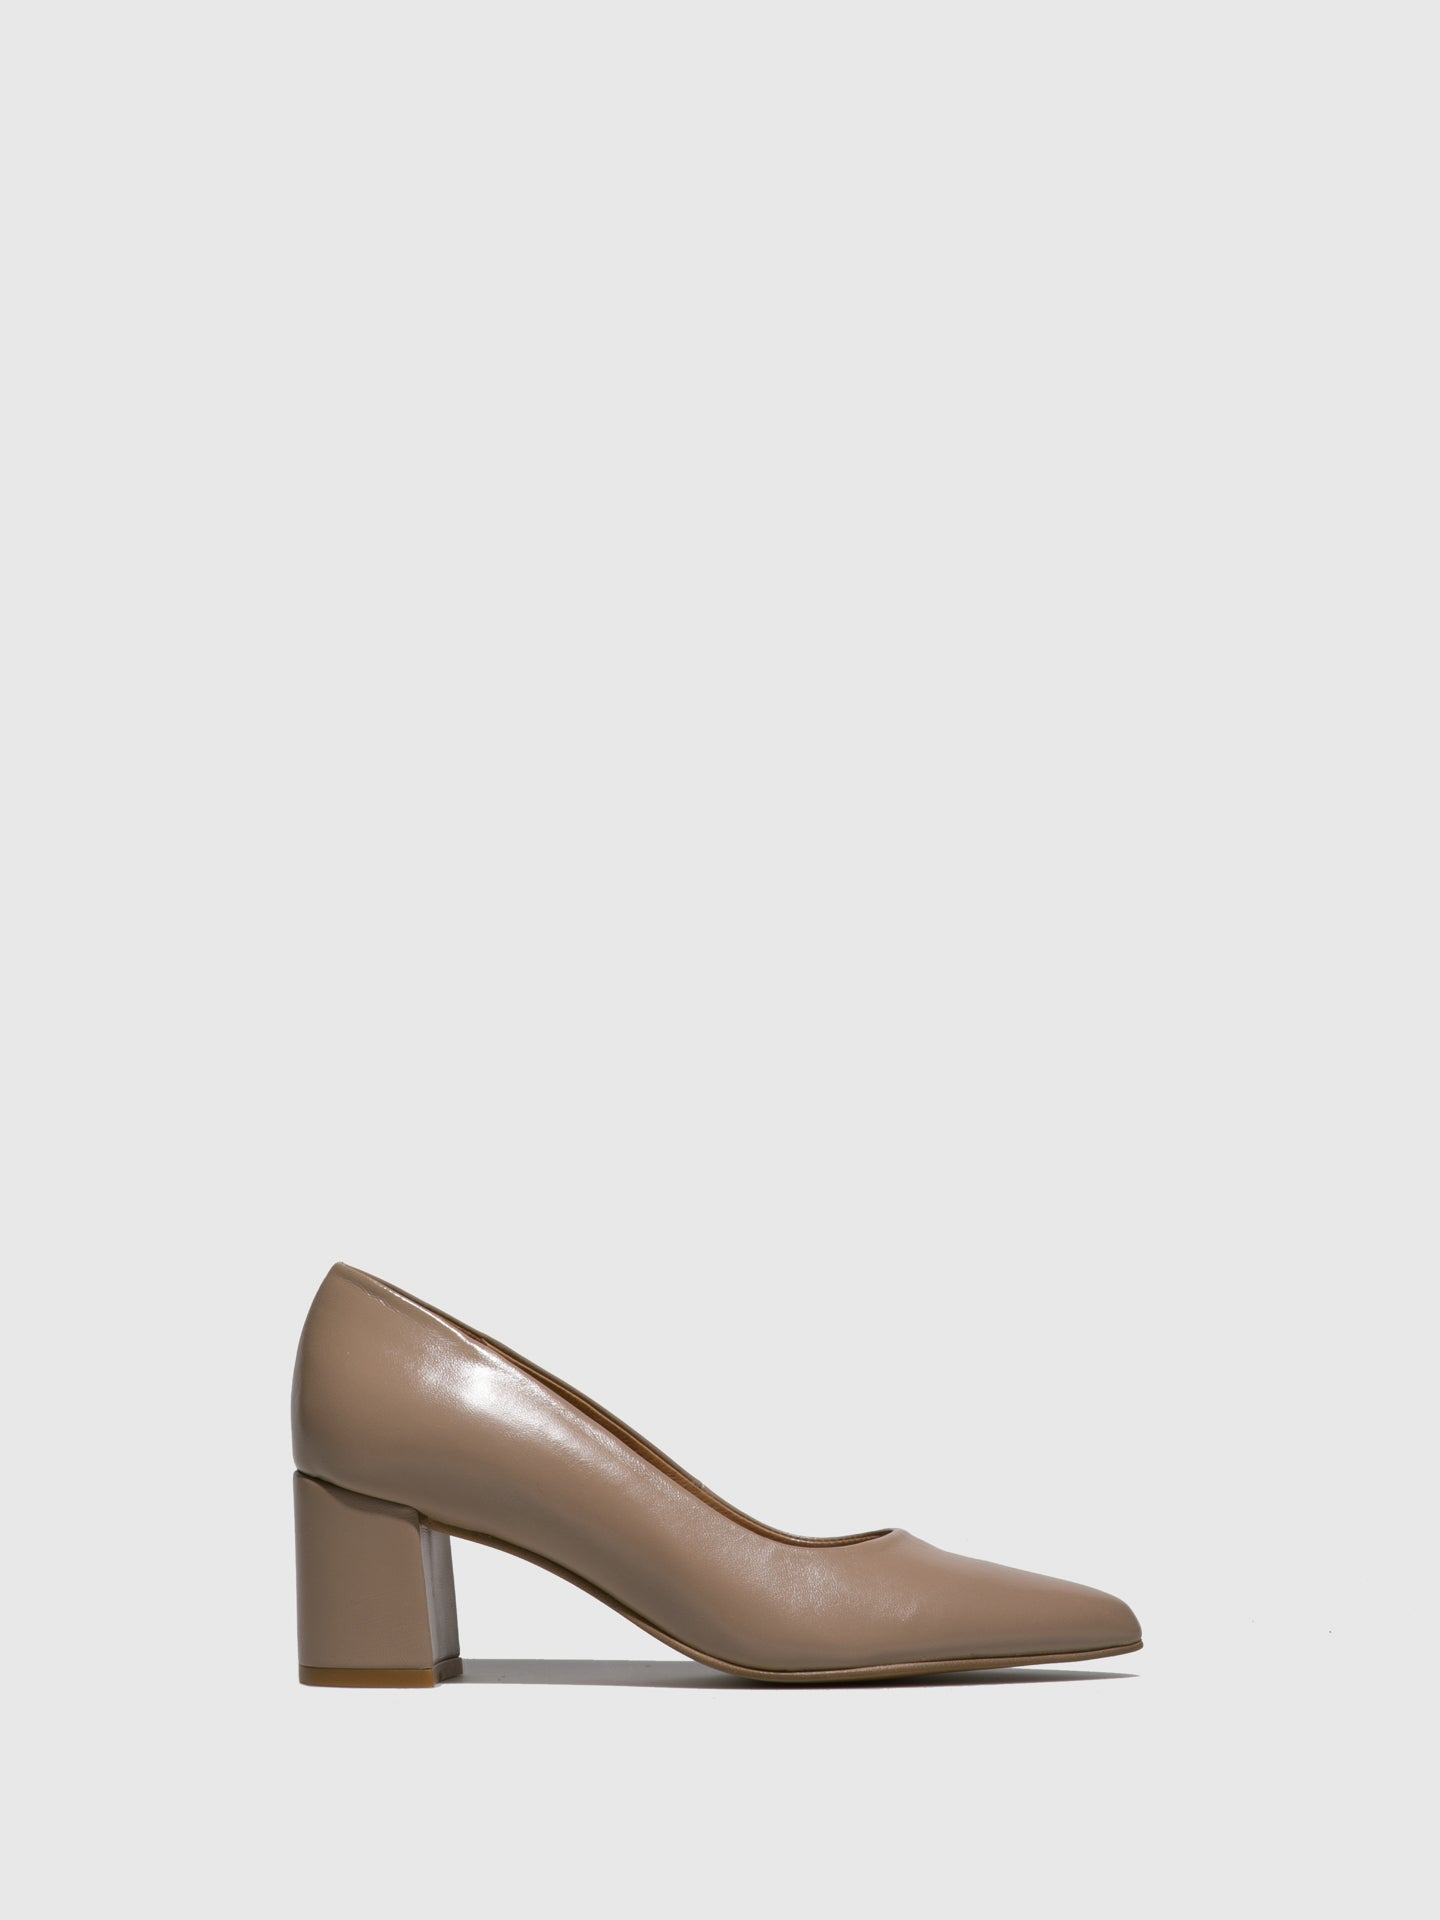 Foreva Beige Block Heel Shoes